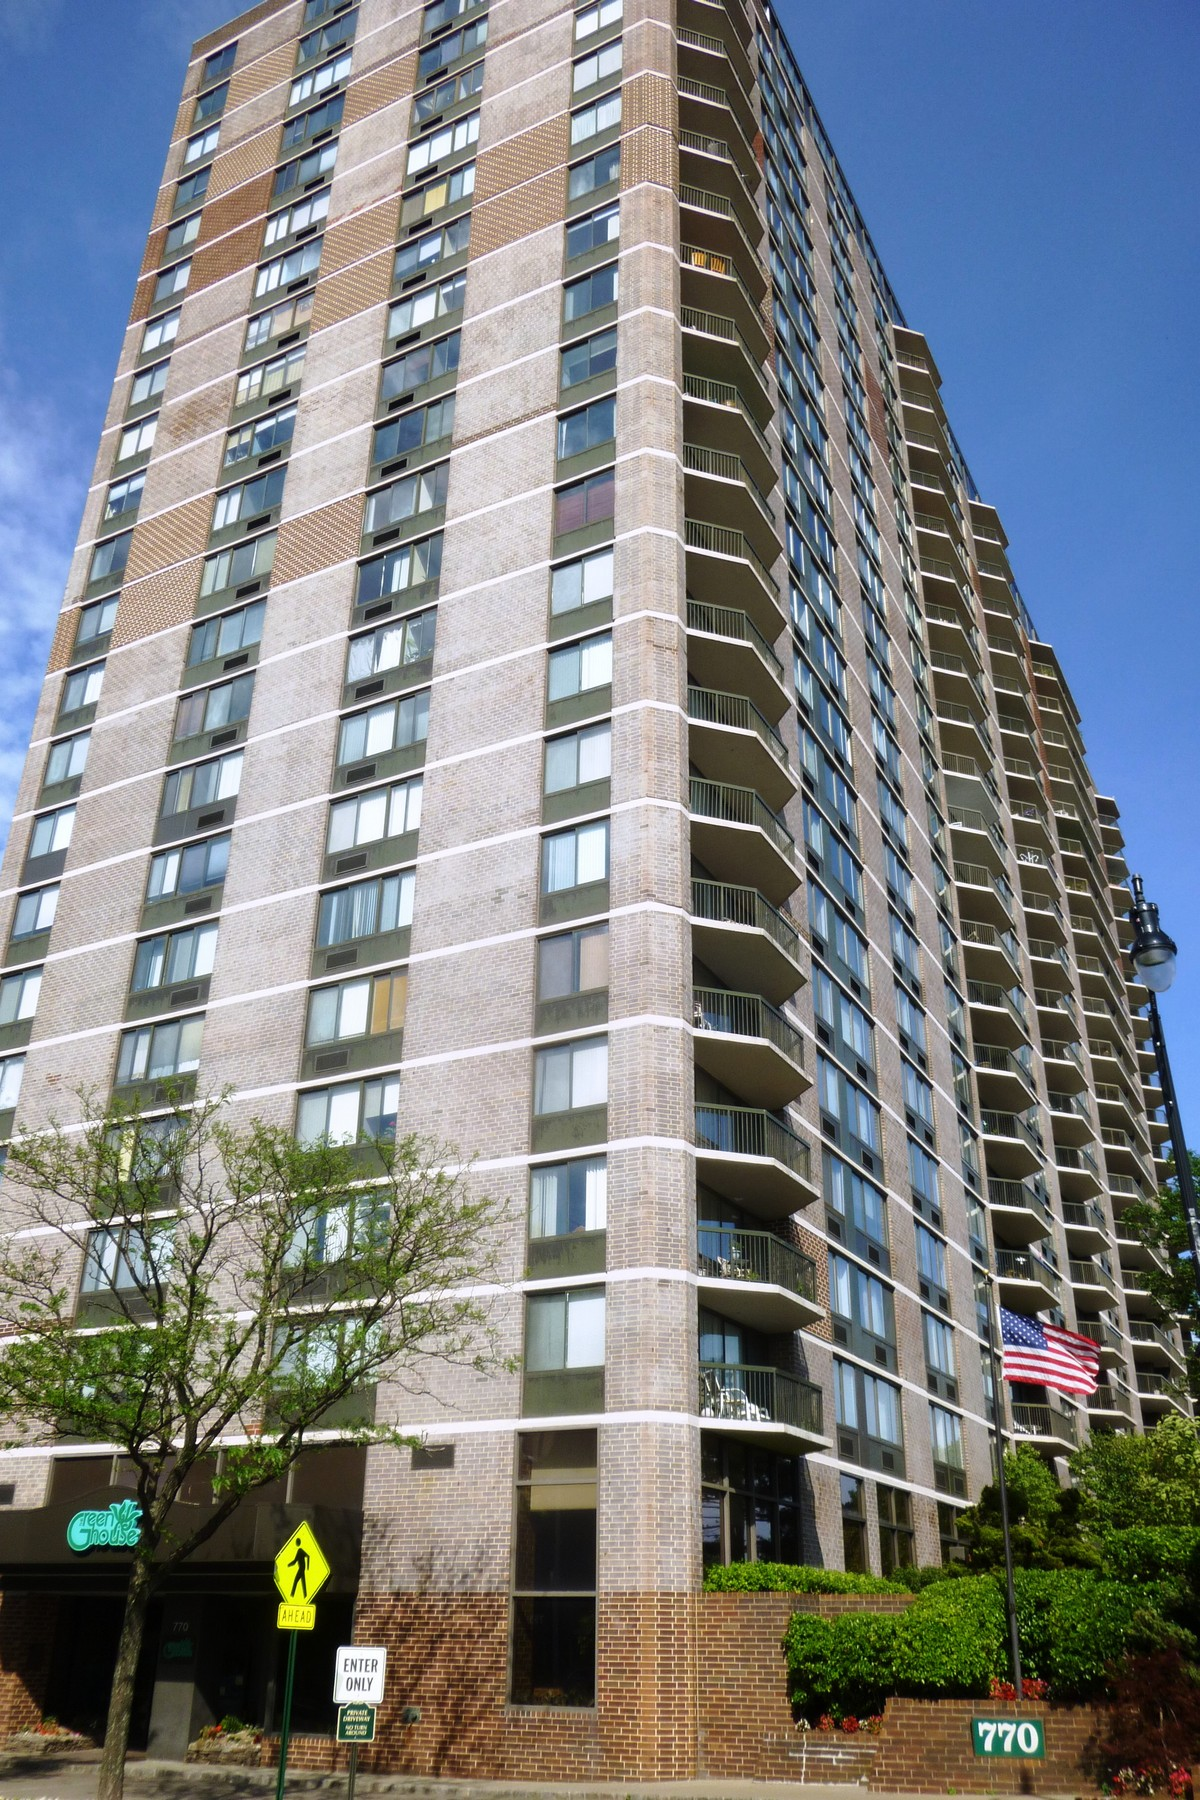 콘도미니엄 용 매매 에 Luxurious corner unit with stunning views! 770 Anderson Avenue #6N Cliffside Park, 뉴저지, 07010 미국